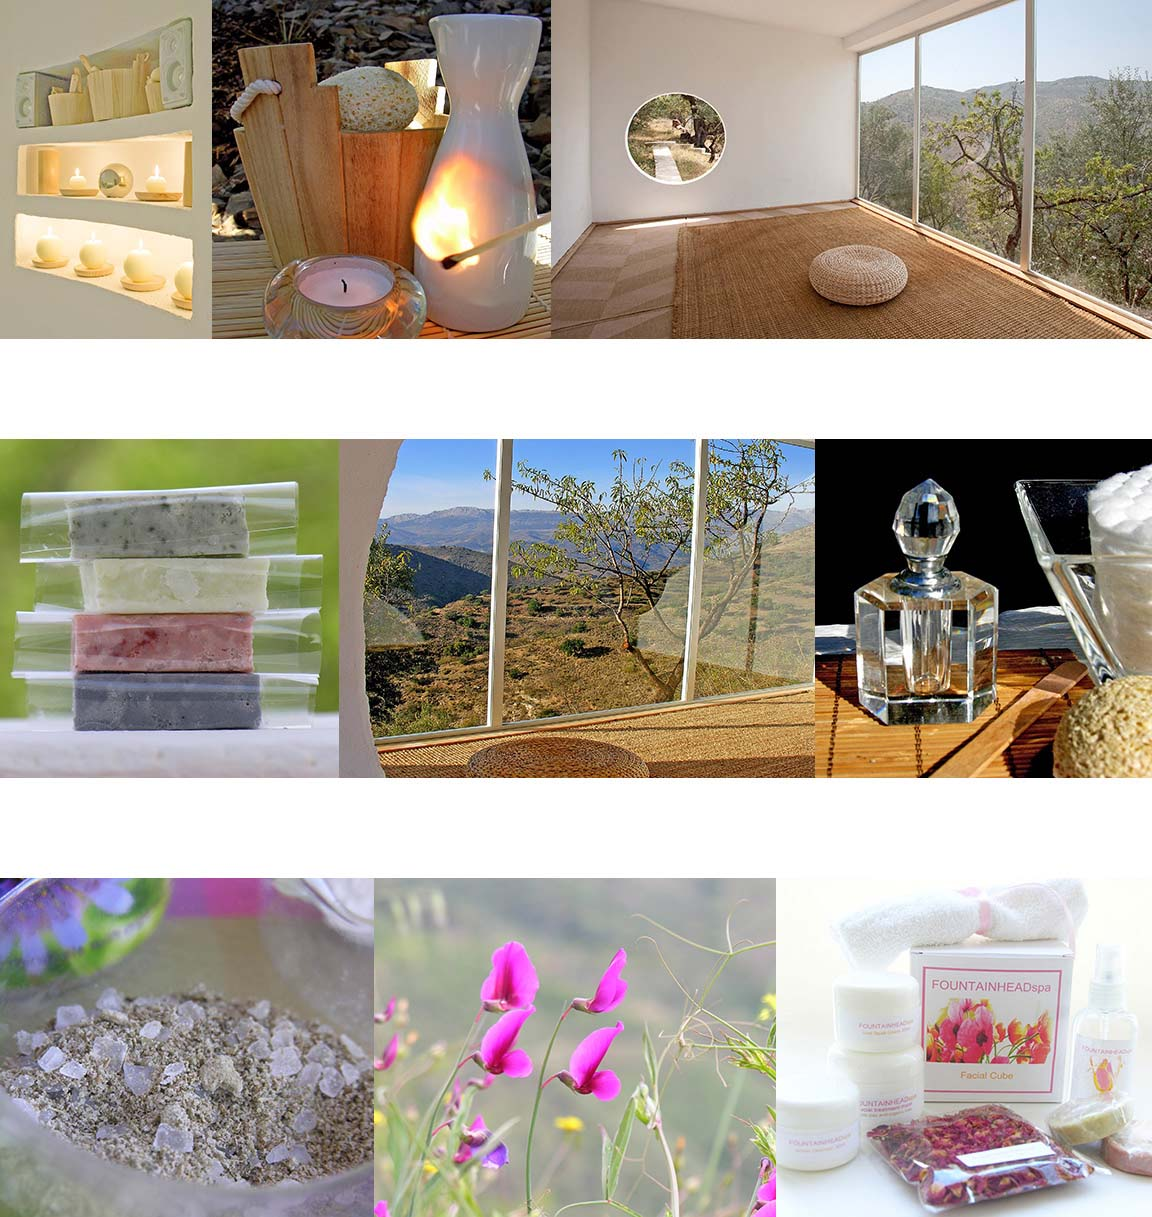 fountainhead natural spa andalucia